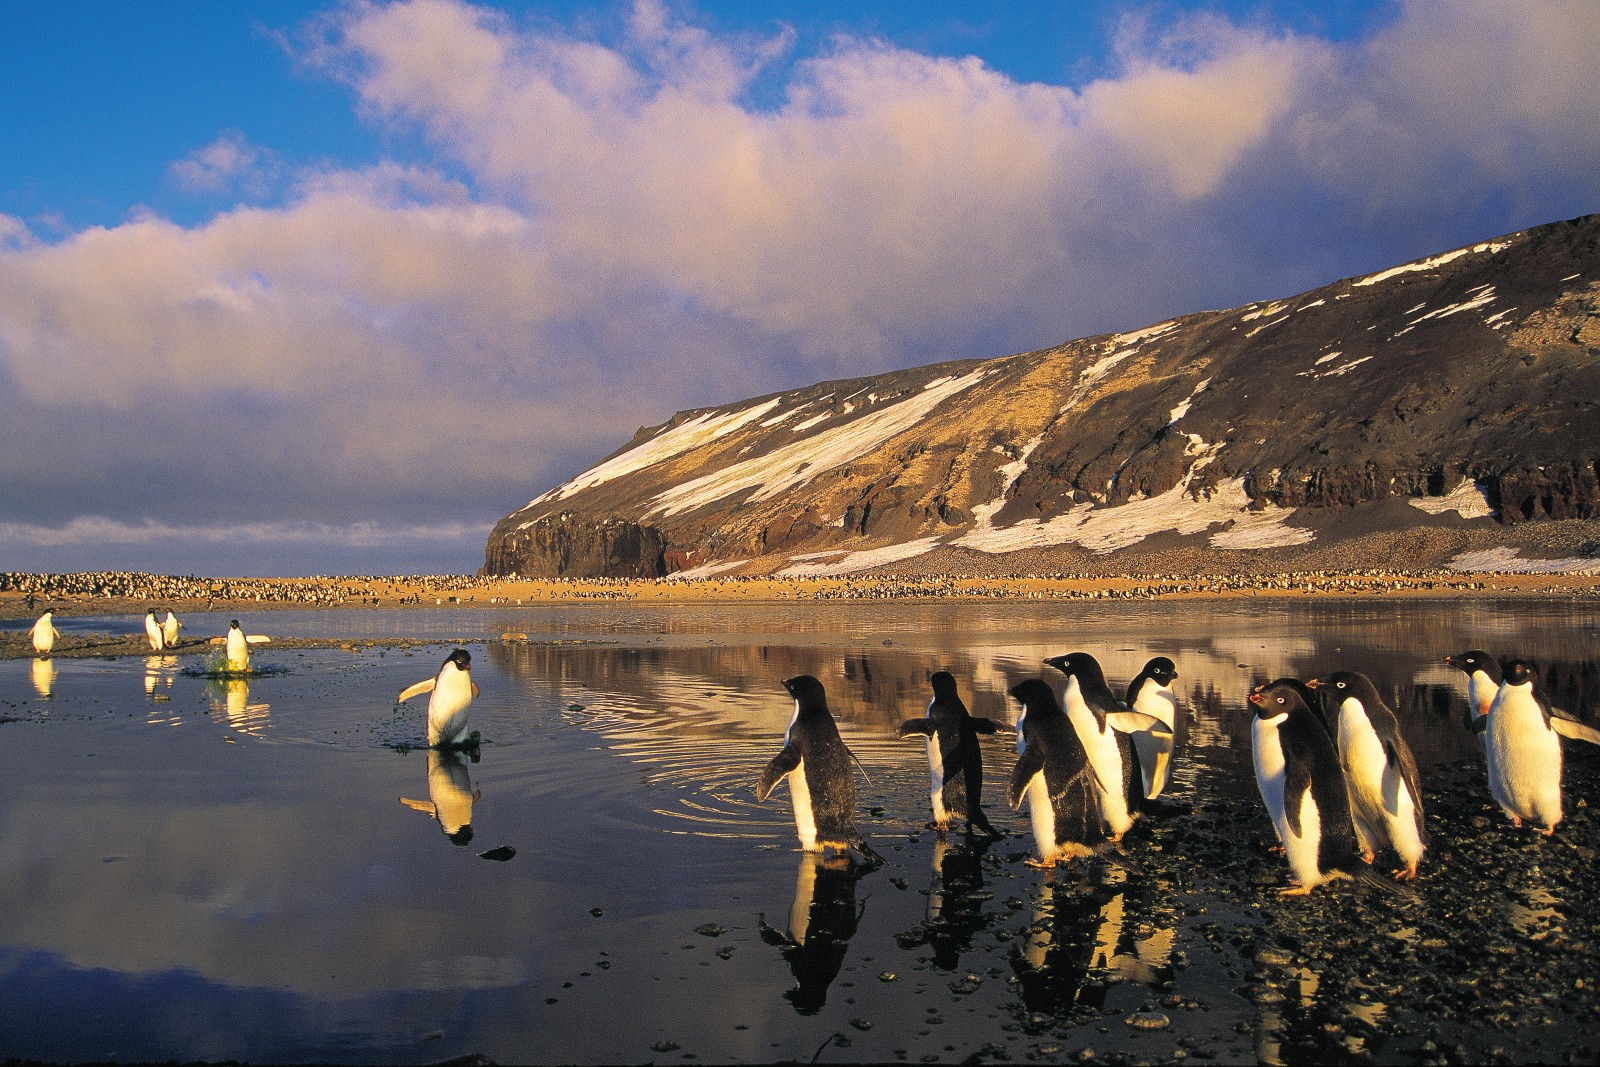 Stubby penguin legs get plenty of use during the breeding season as the birds waddle across shore and ice to reach the seas where they feed. Here, at Cape Adore, they negotiate a pond created by melting ice.